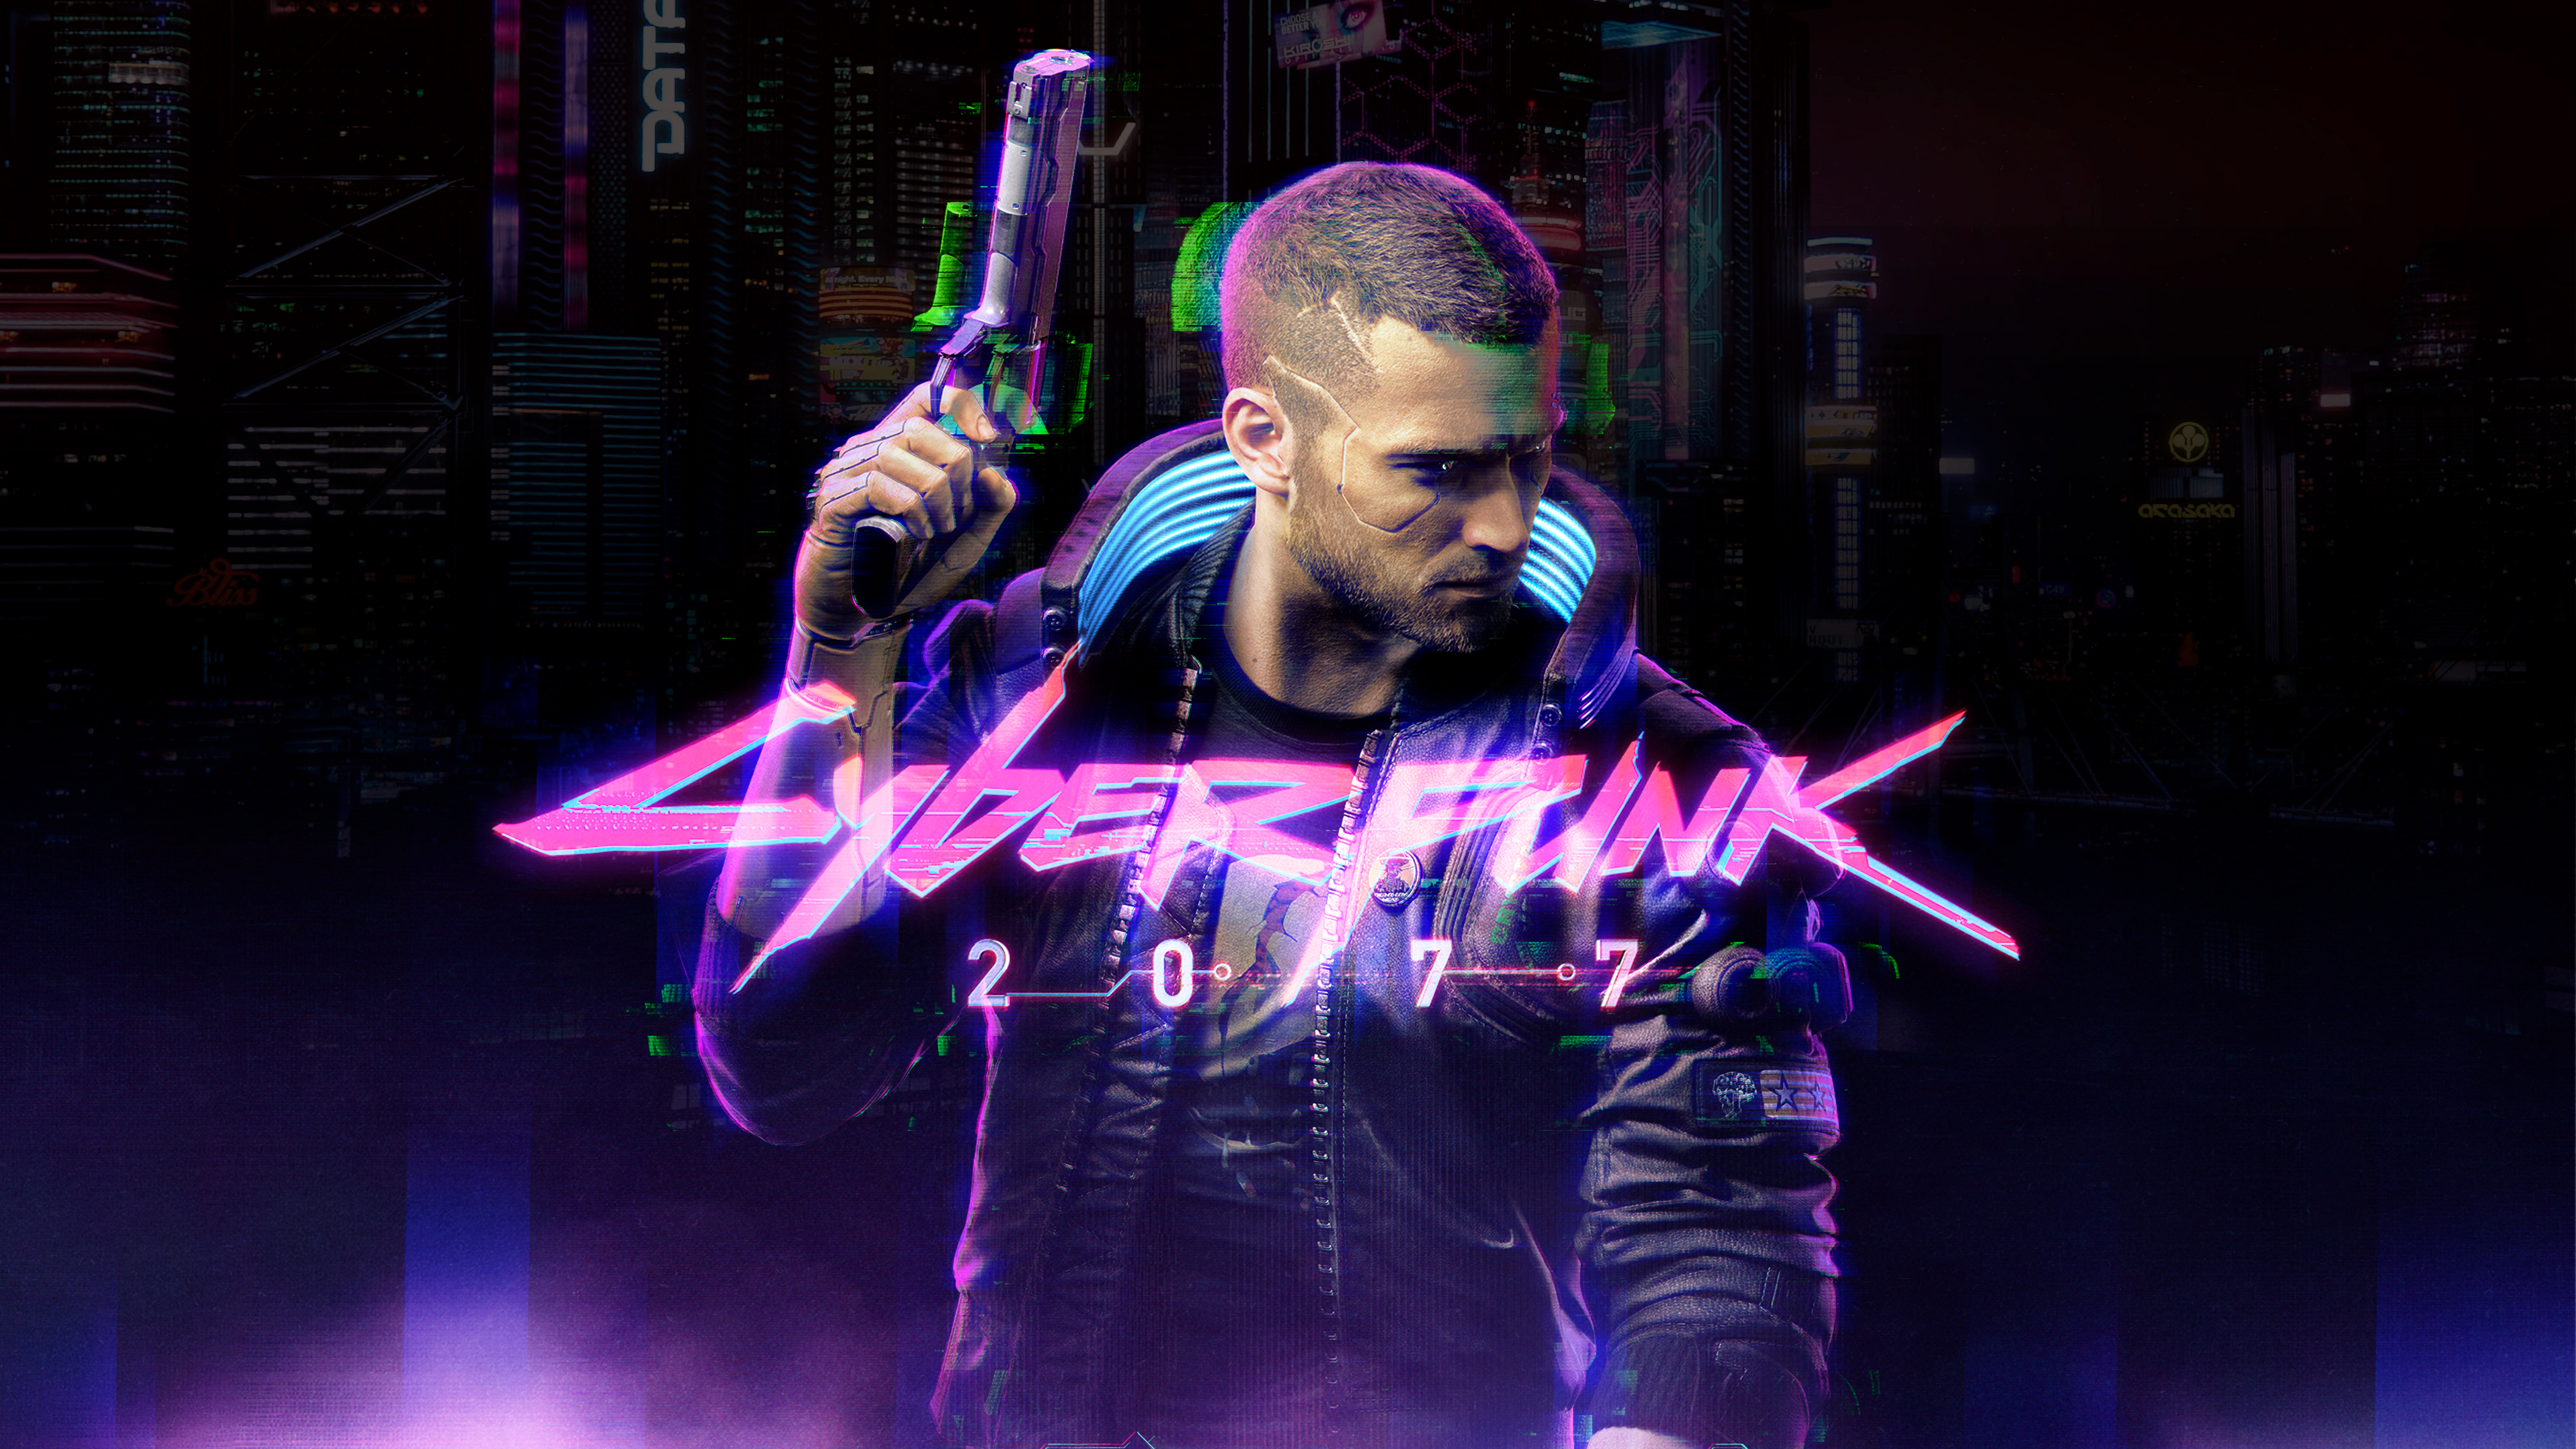 4k Cyberpunk 2077 Game Hd Games 4k Wallpapers Images Backgrounds Photos And Pictures